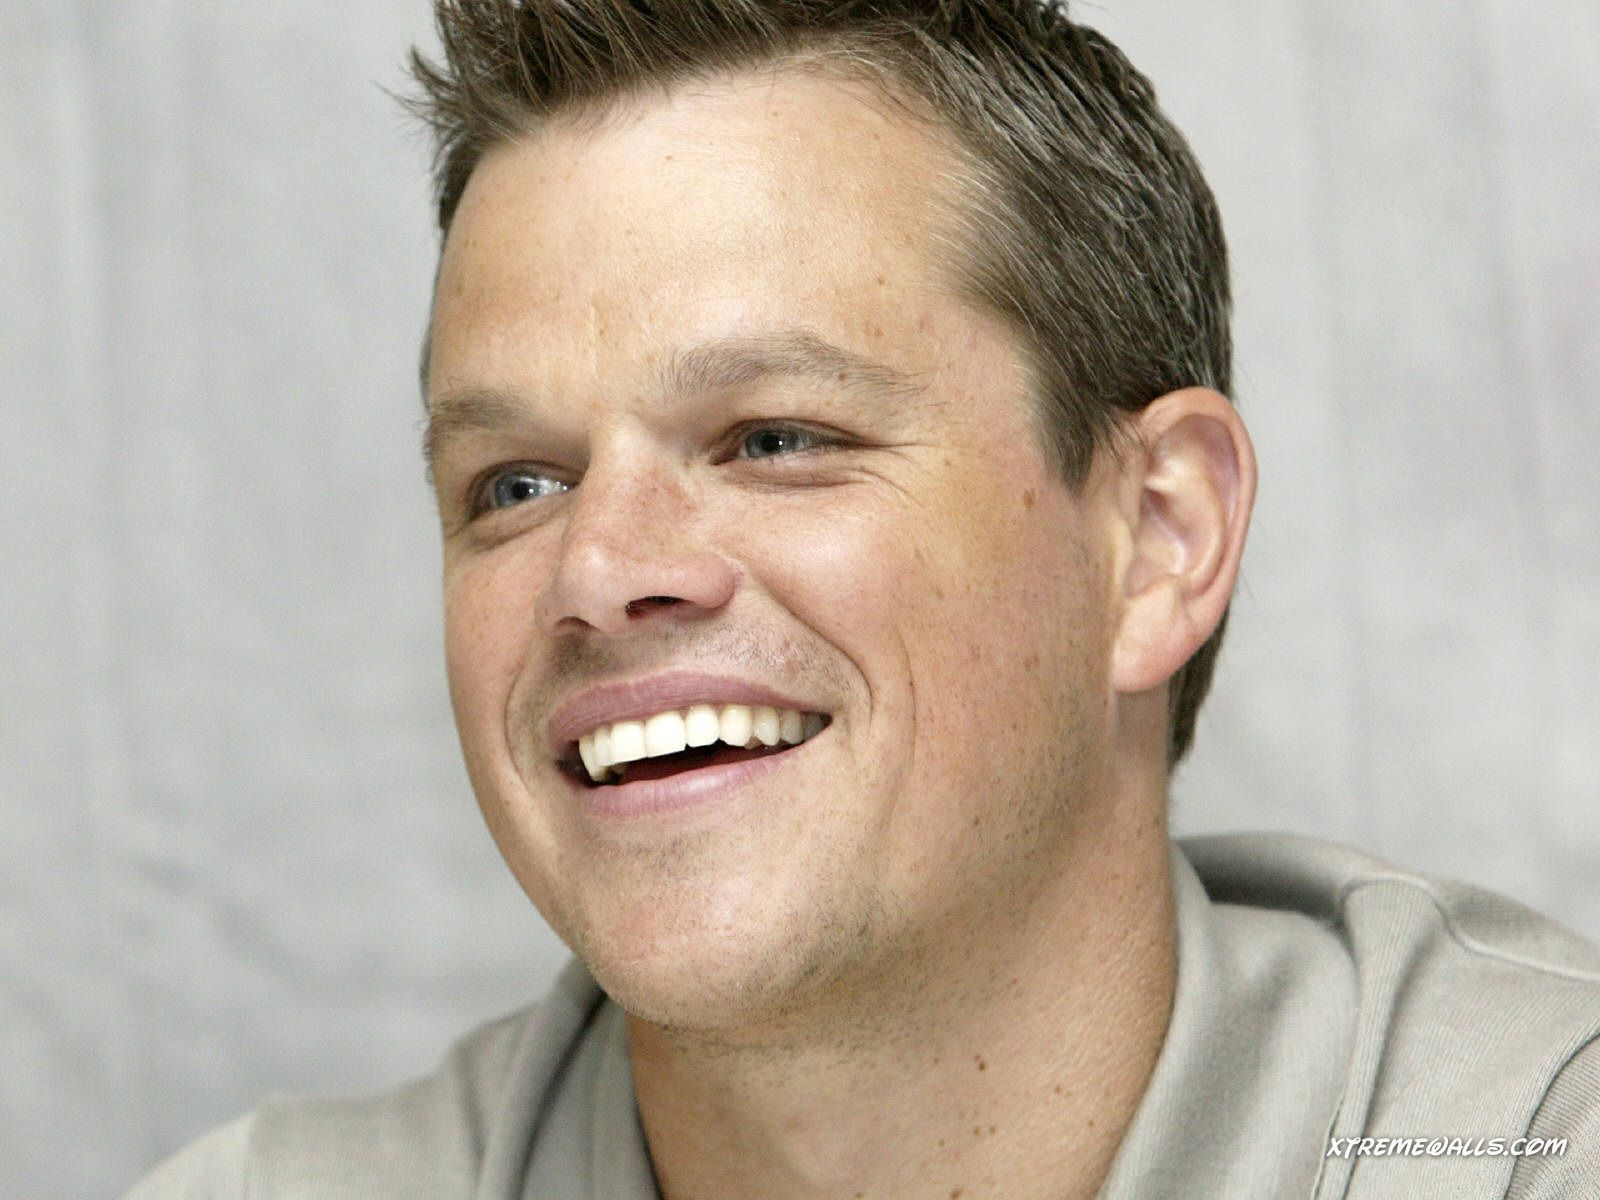 matt damon 2017matt damon movies, matt damon wife, matt damon 2016, matt damon height, matt damon ben affleck, matt damon young, matt damon jimmy kimmel, matt damon 2017, matt damon net worth, matt damon харламов, matt damon film, matt damon wikipedia, matt damon the great wall, matt damon twitter, matt damon oscar, matt damon imdb, matt damon my funny valentine, matt damon фильмы, matt damon wall, matt damon рост